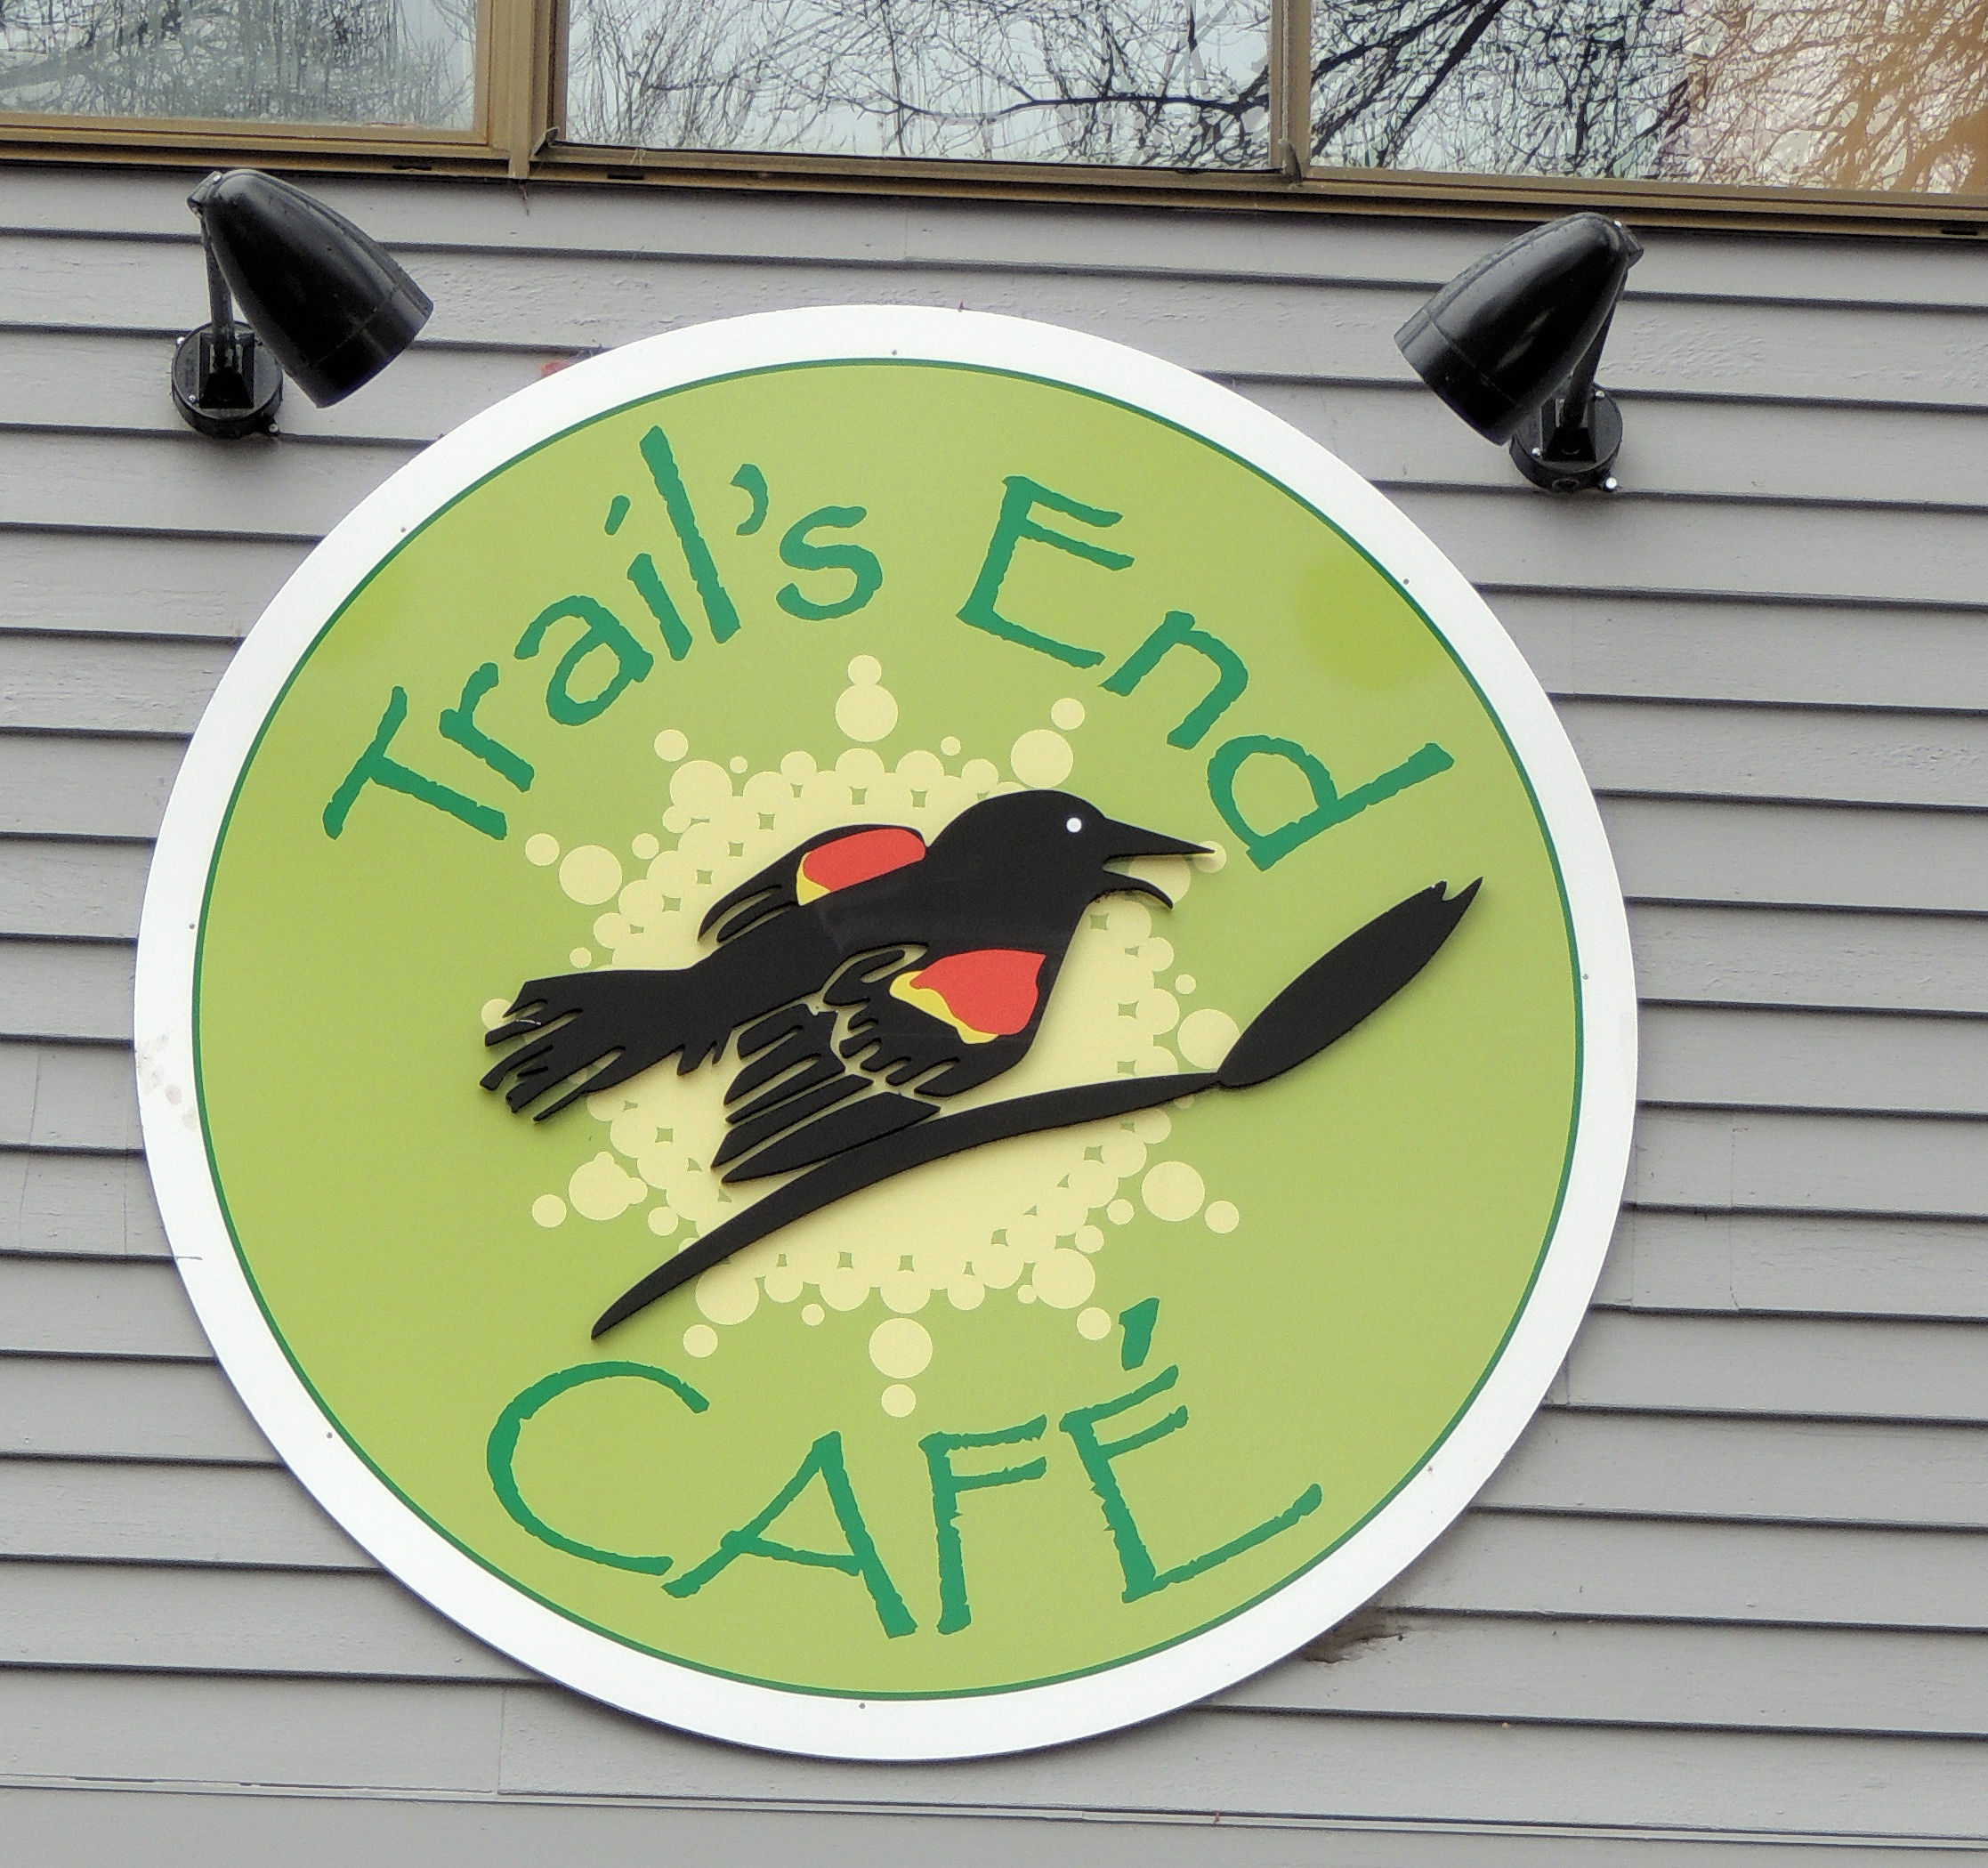 Trails End Cafe New England Traditional Jazz Plus